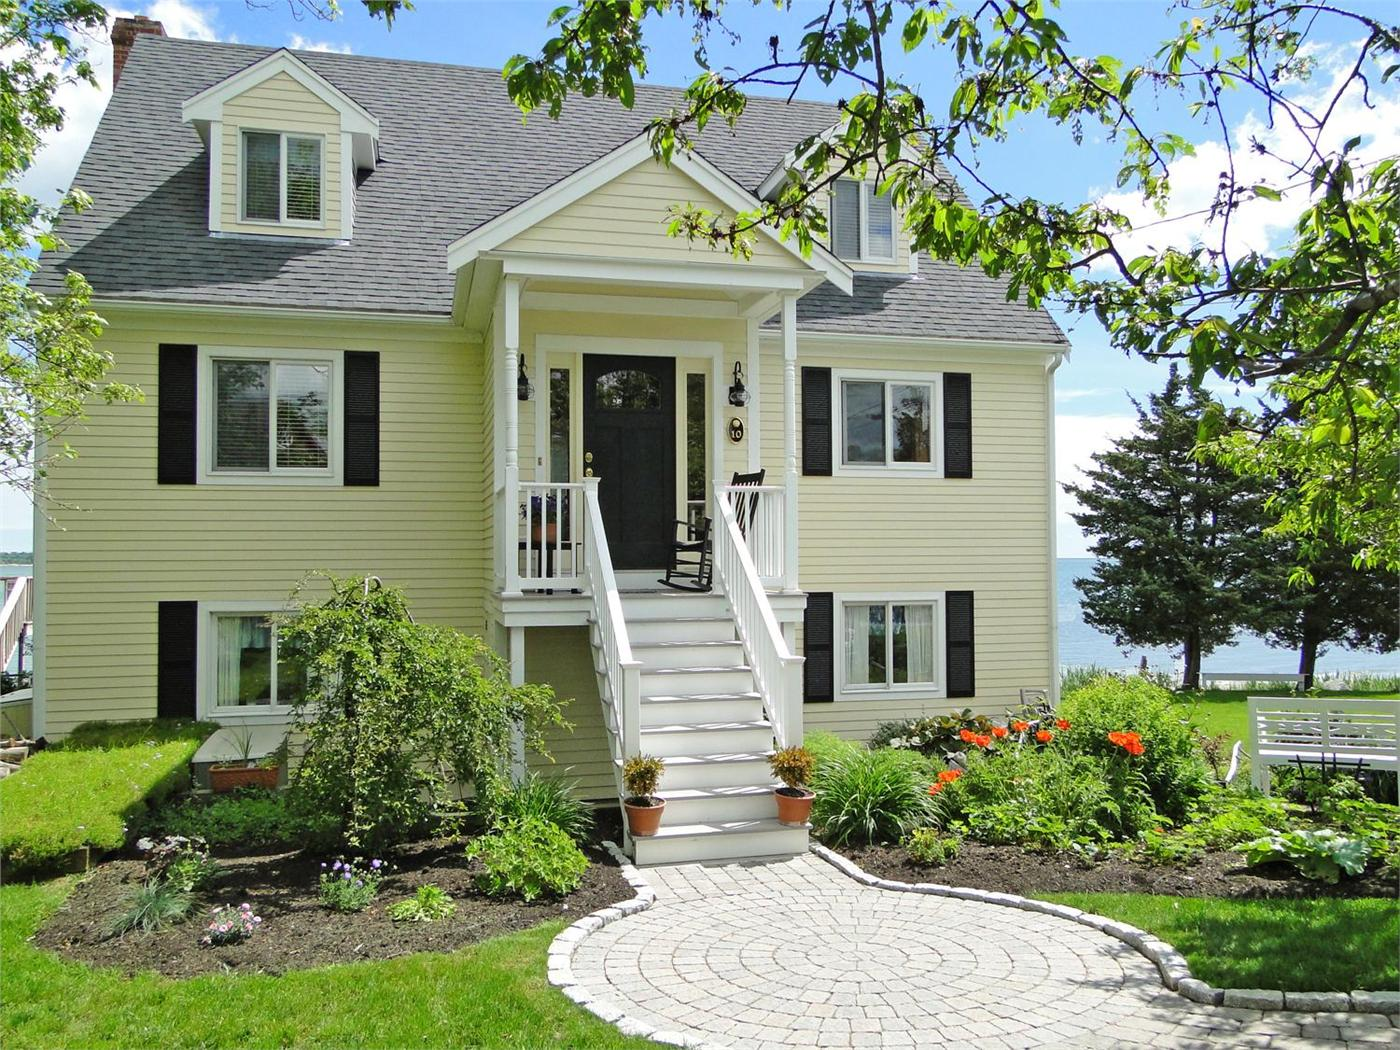 rental in ma vacation classic cottage waterfront provincetown homeaway compo cottages beach